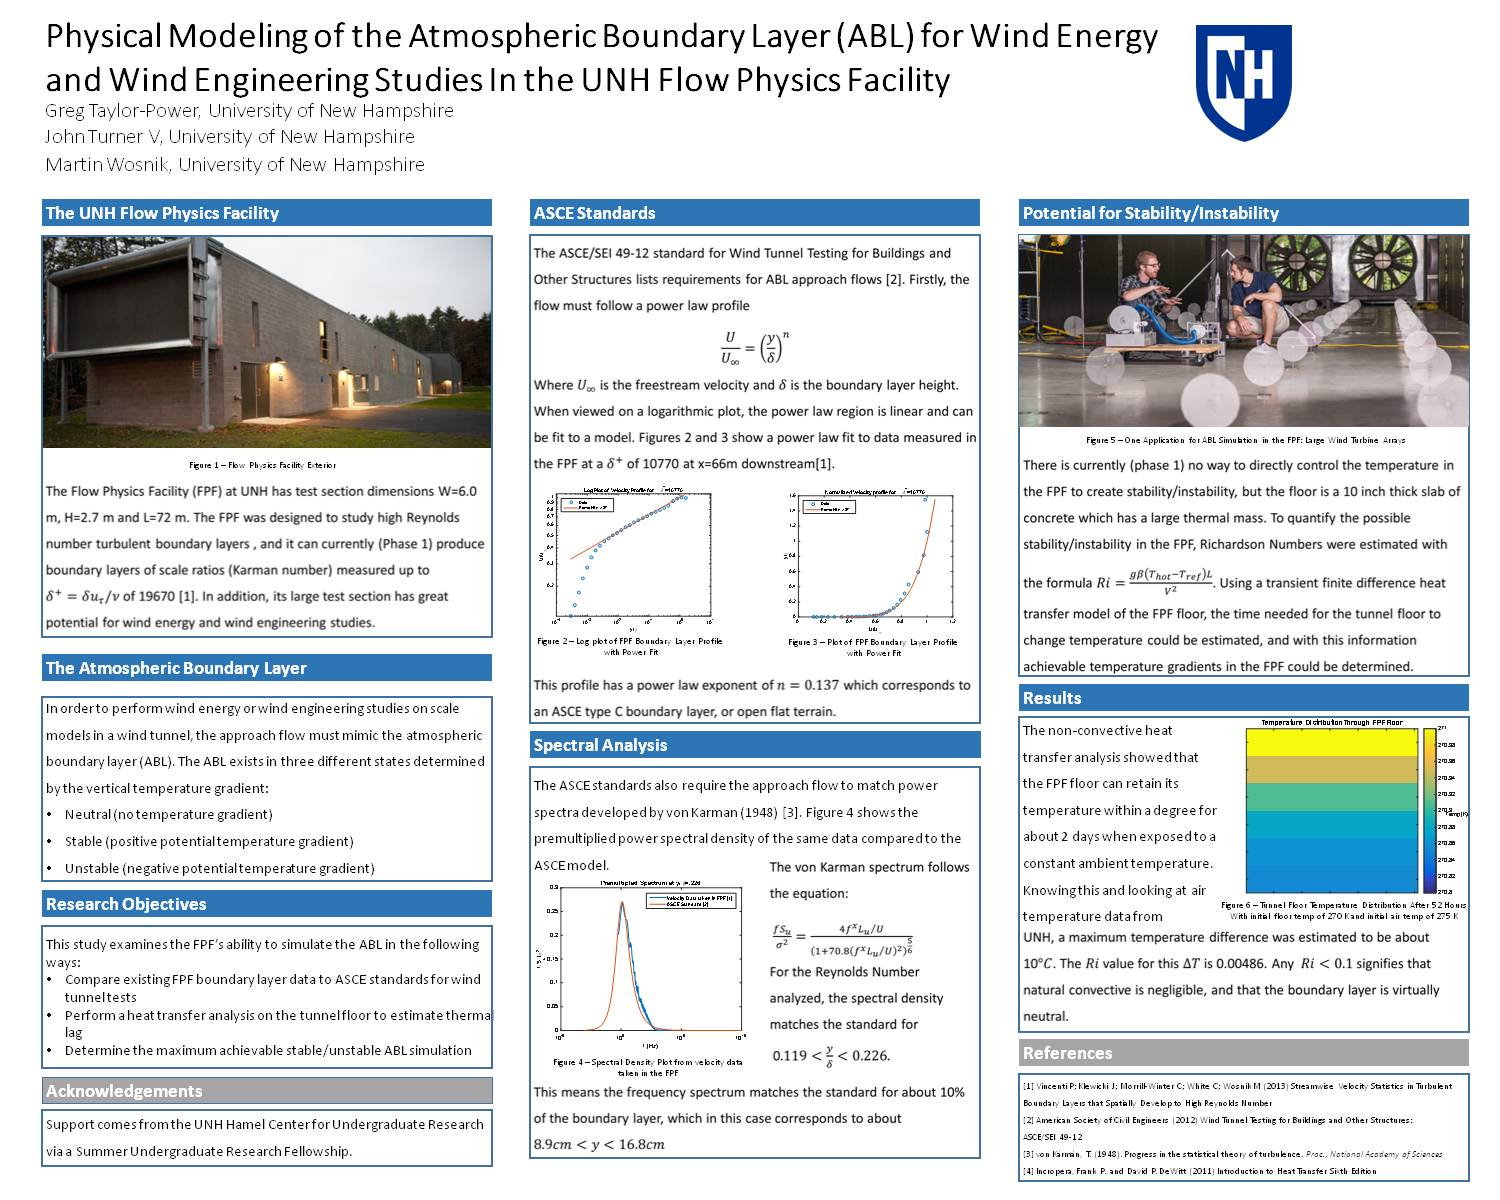 Physical Modeling Of The Atmospheric Boundary Layer (Abl) For Wind Energy  And Wind Engineering Studies In The Unh Flow Physics Facility by gga3